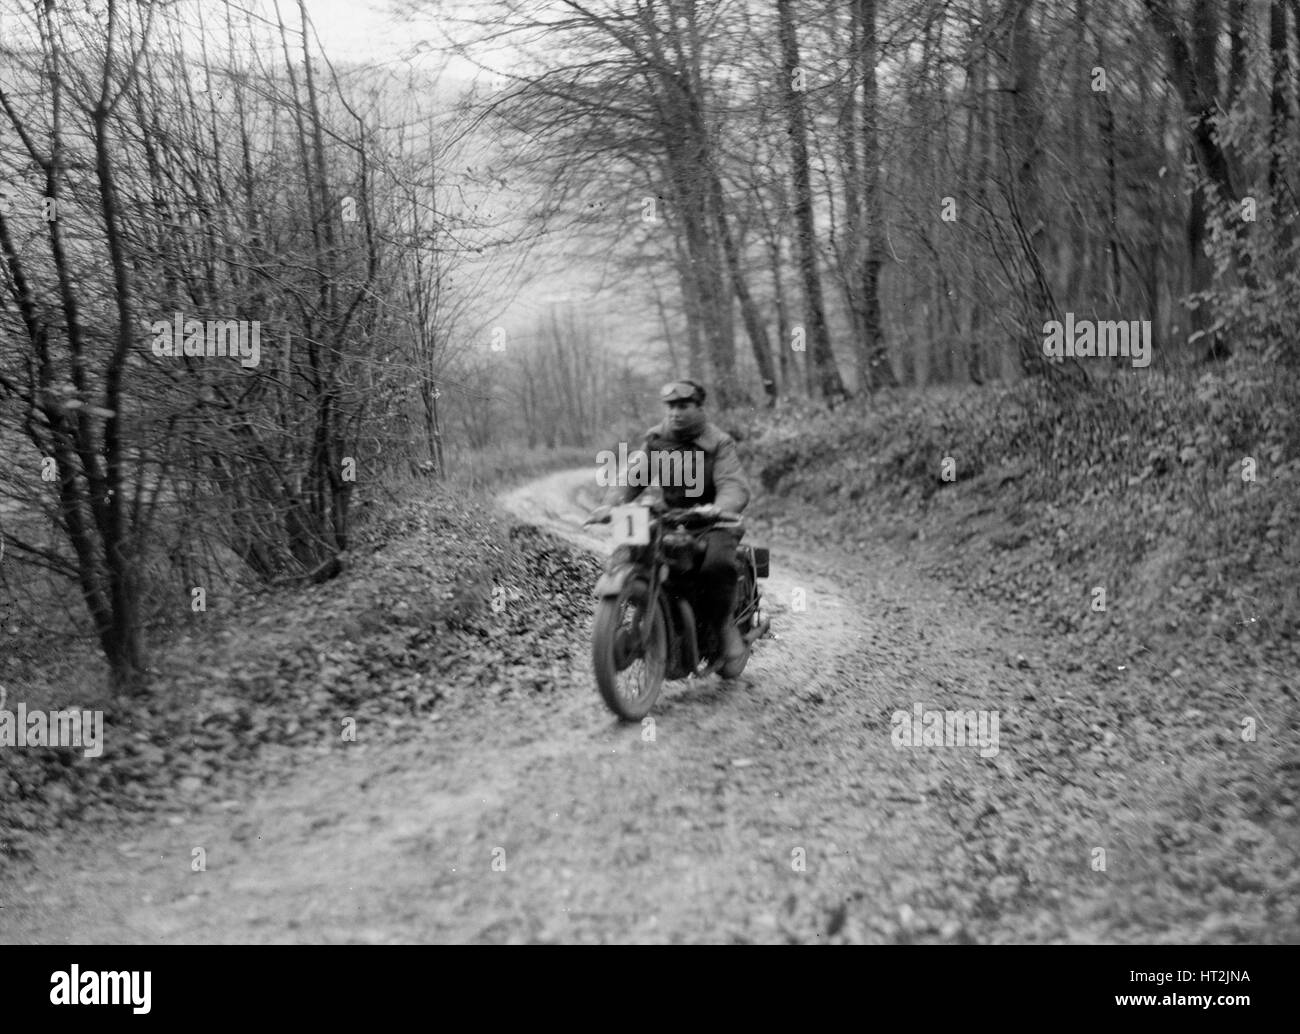 Motorcycle ridden by RD Quincy competing in the Inter-Varsity Trial, November 1931. Artist: Bill Brunell. - Stock Image